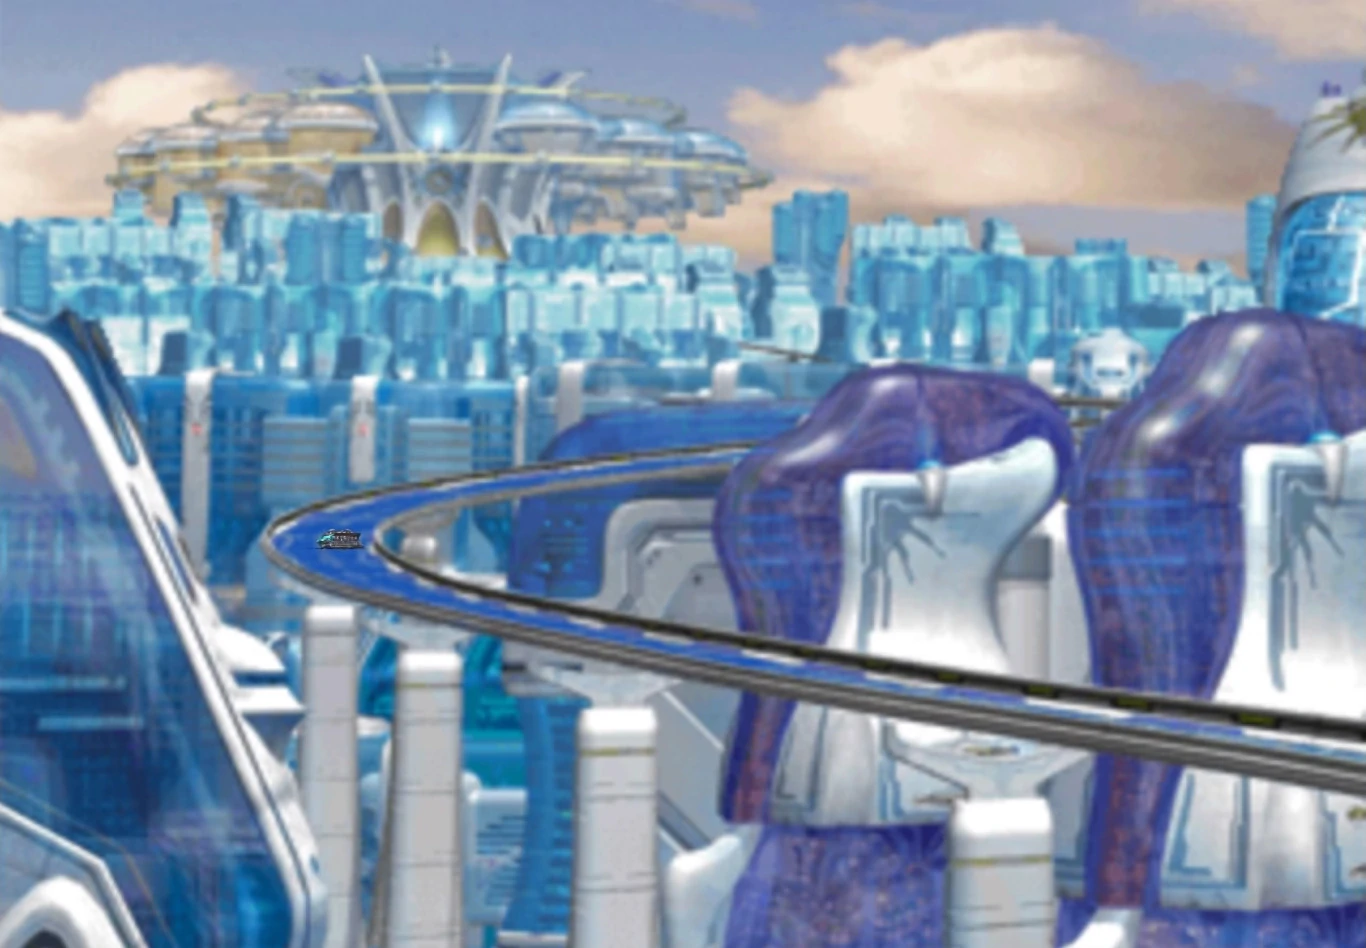 FFVIII is not a top PS1 RPG - futuristic cityscape